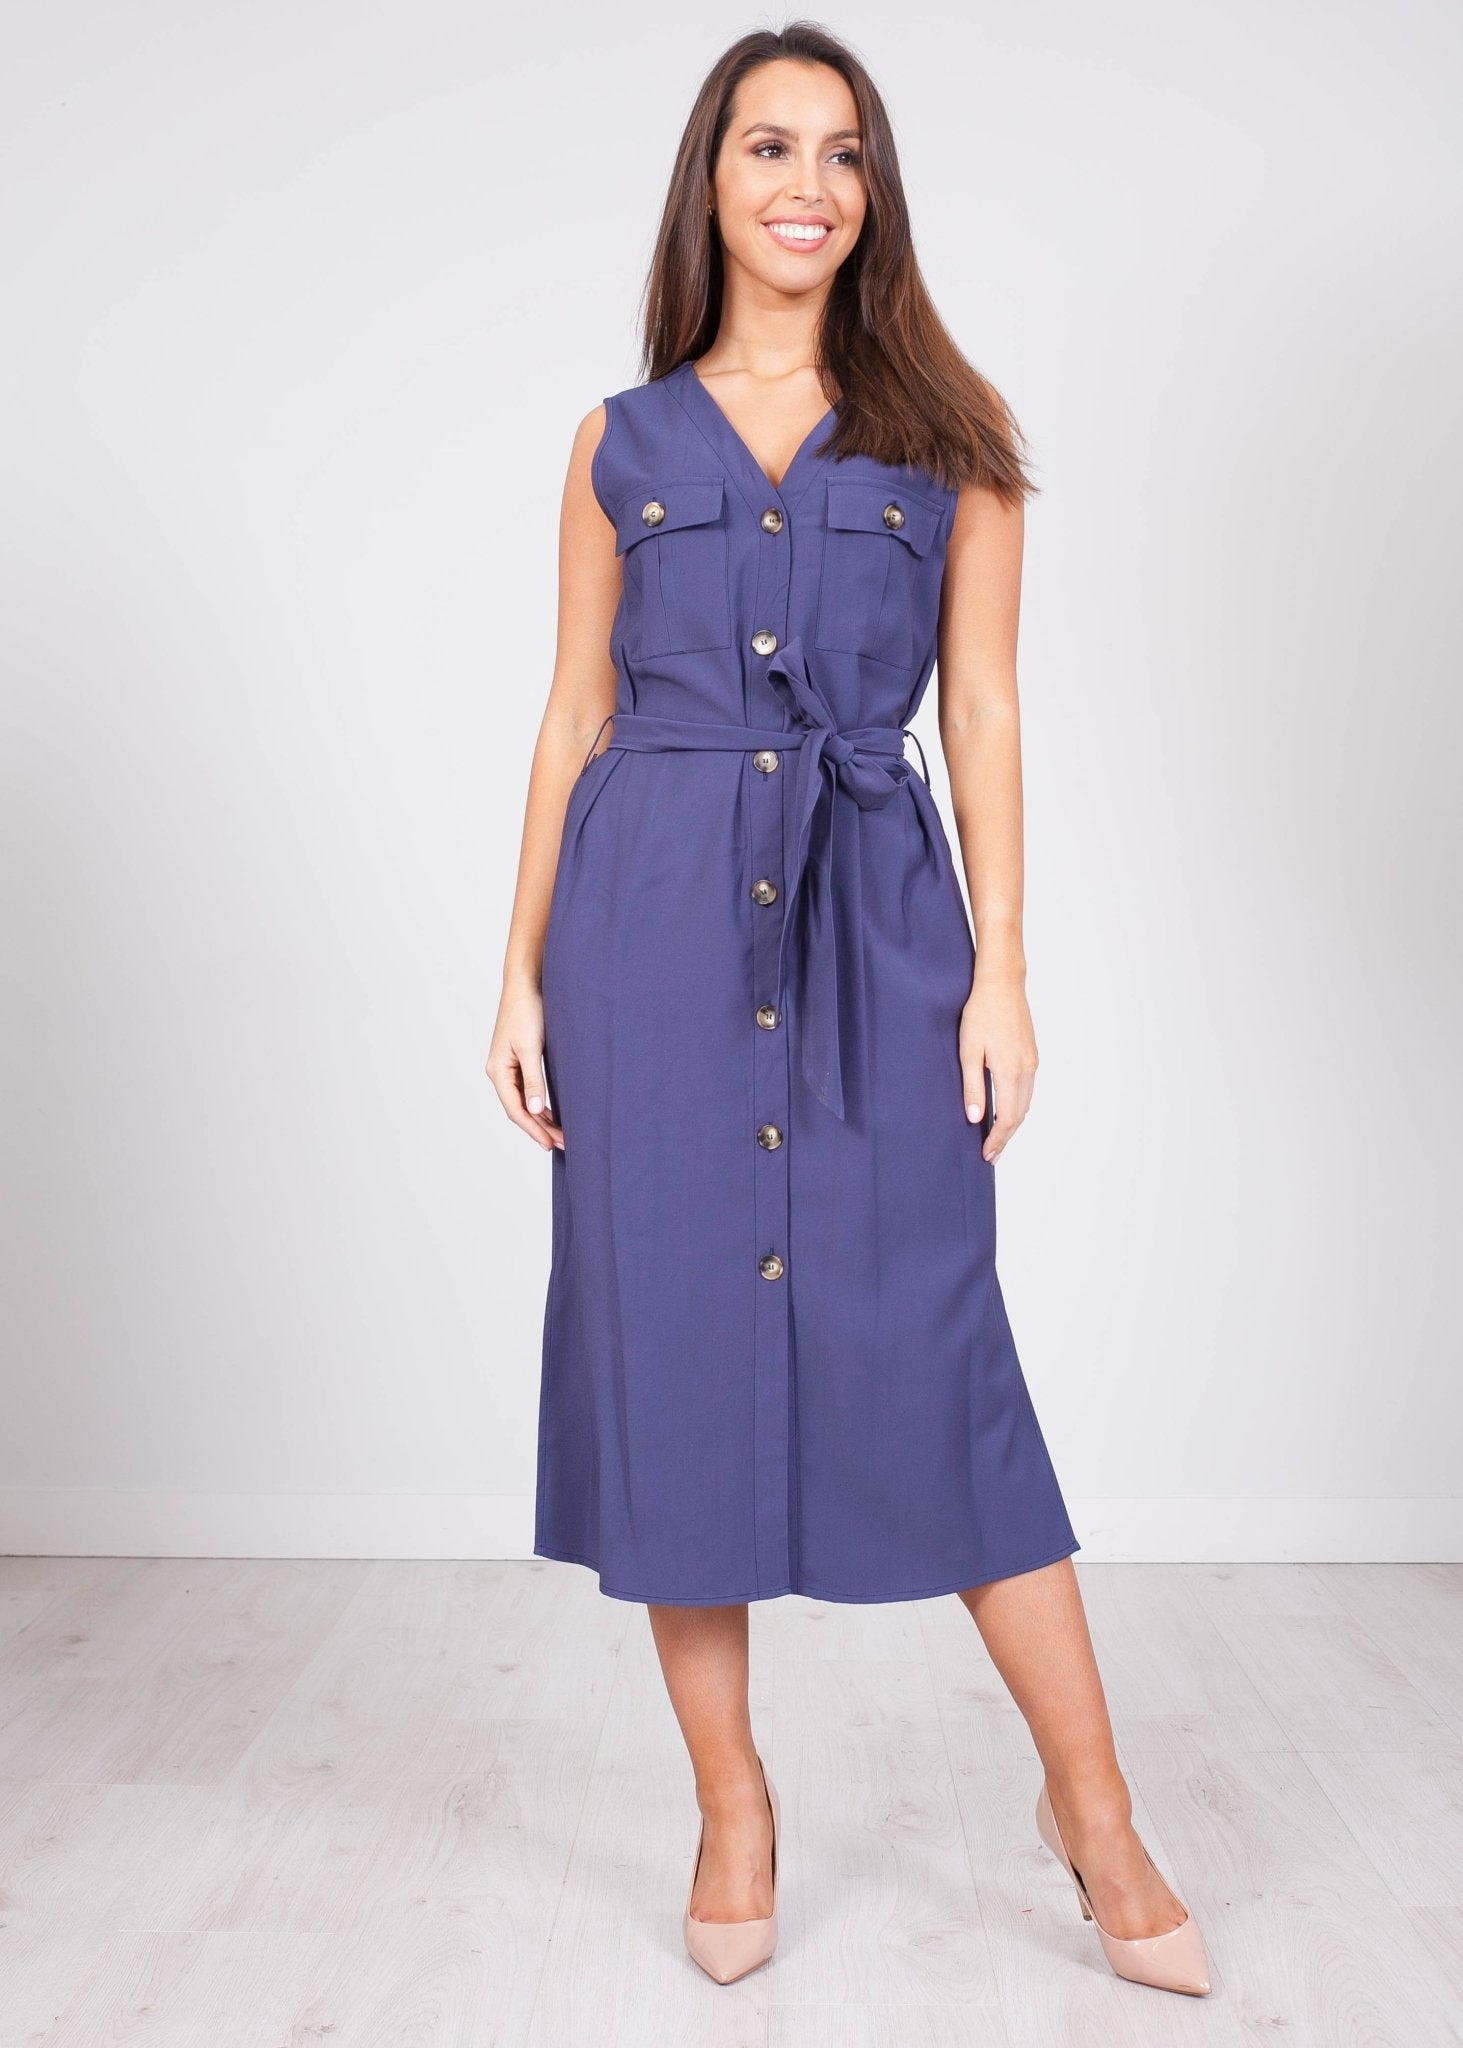 Faye Navy Tie Waist Dress - The Walk in Wardrobe